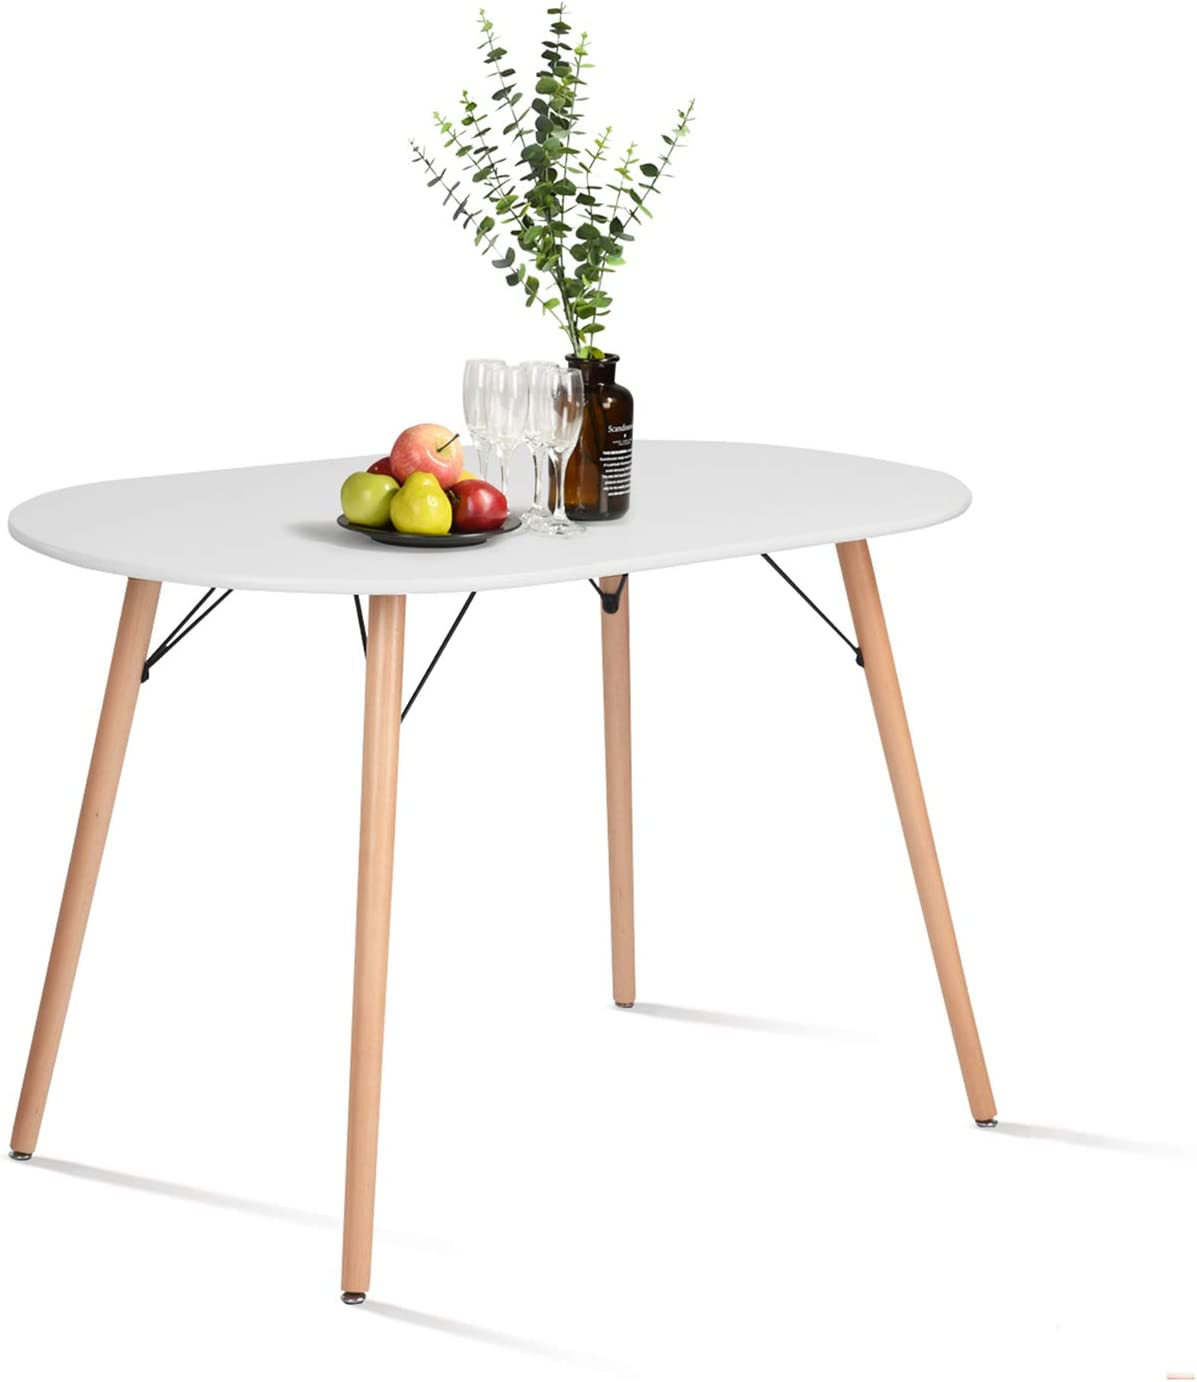 Amazon Com Homy Casa Farmhouse Dining Table Mid Century Kitchen Table With Wood Tube Oval Top For Home Office Patio White Only Table Not Include Chairs Tables